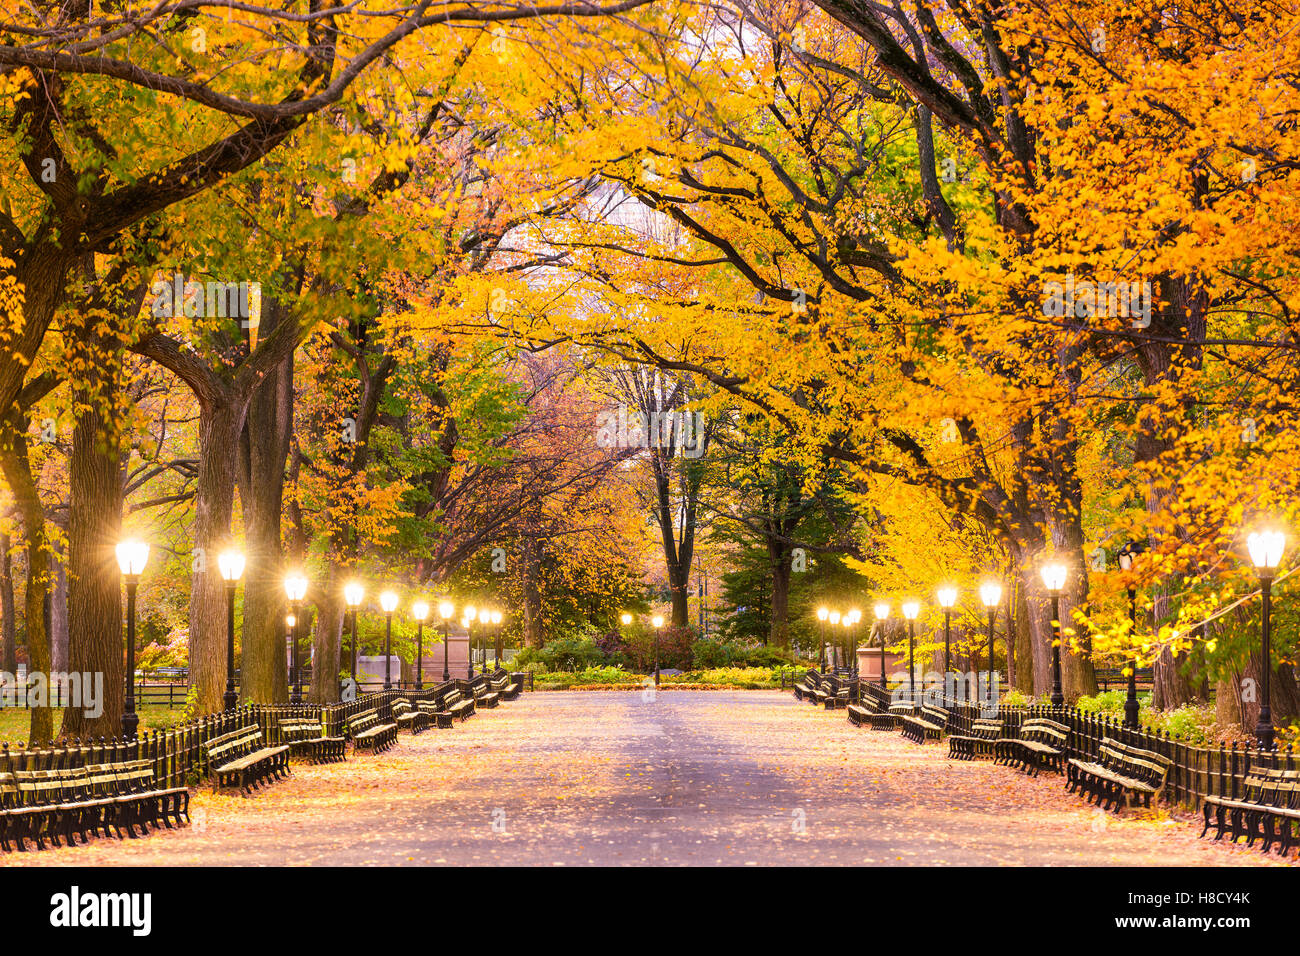 Central Park in The Mall in New York City während der Morgendämmerung Stunden. Stockbild